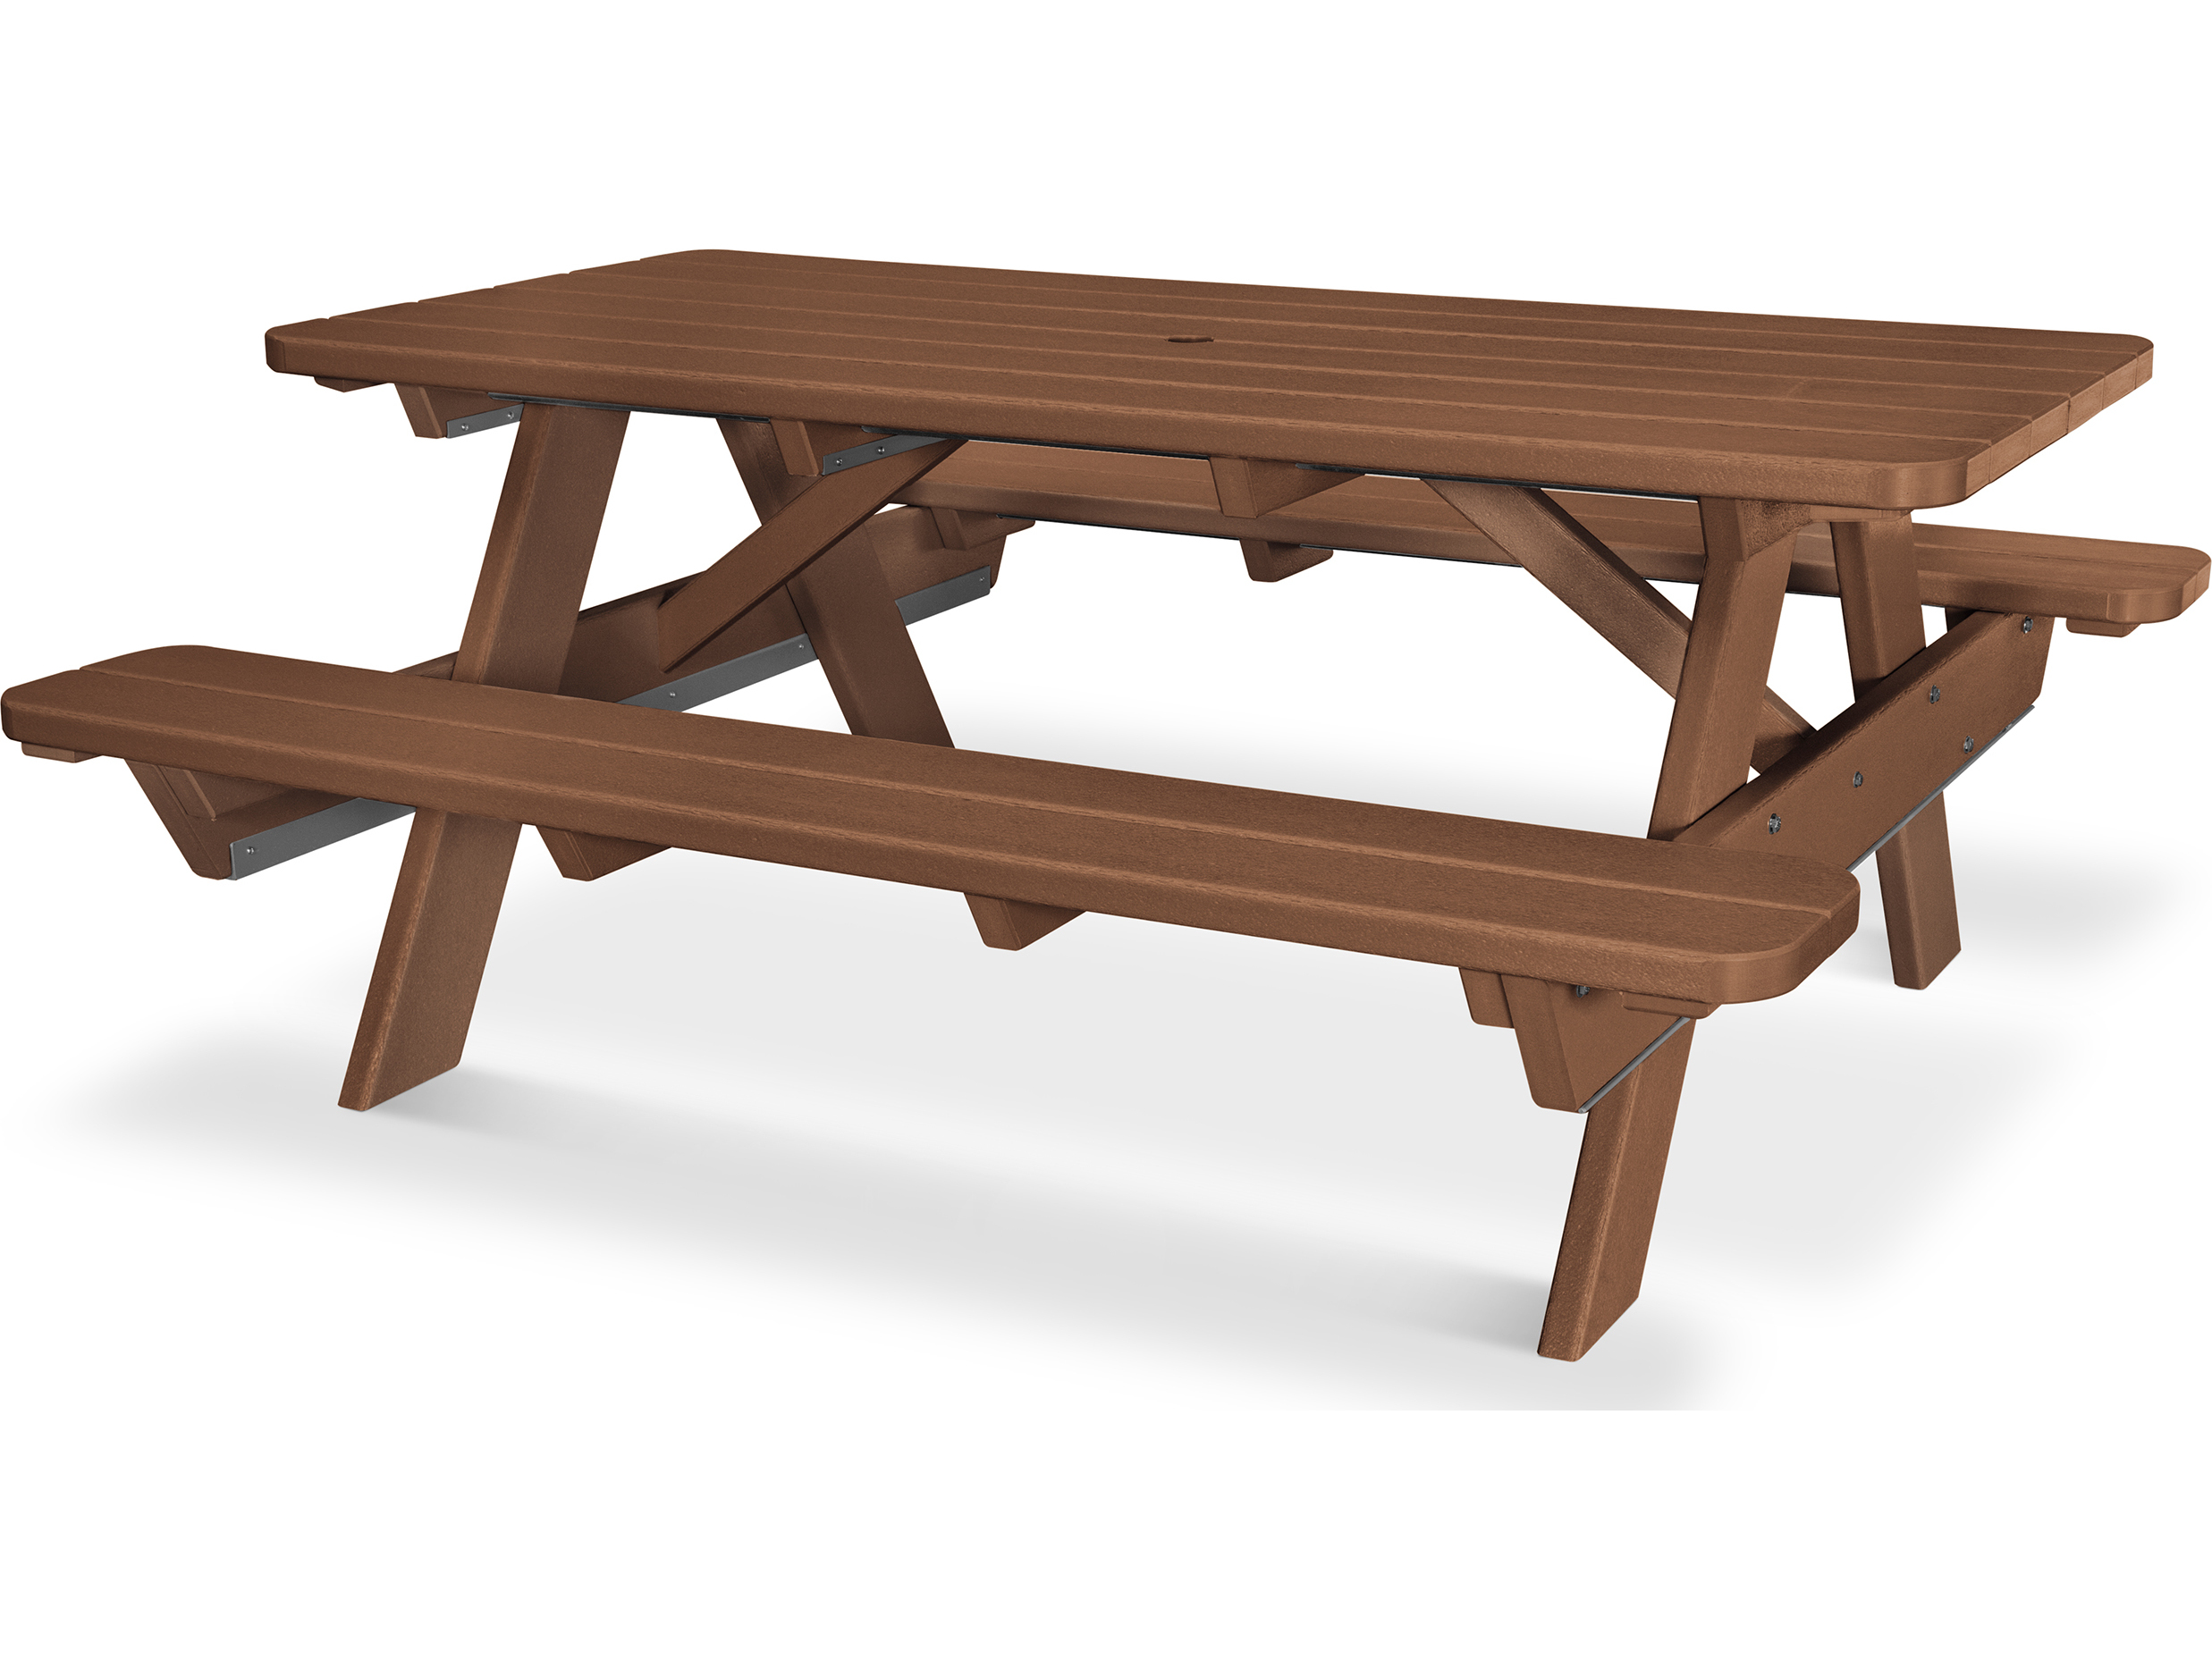 ft nautical bench swing polywood benches hunter porch recycled hayneedle master green plastic cfm product